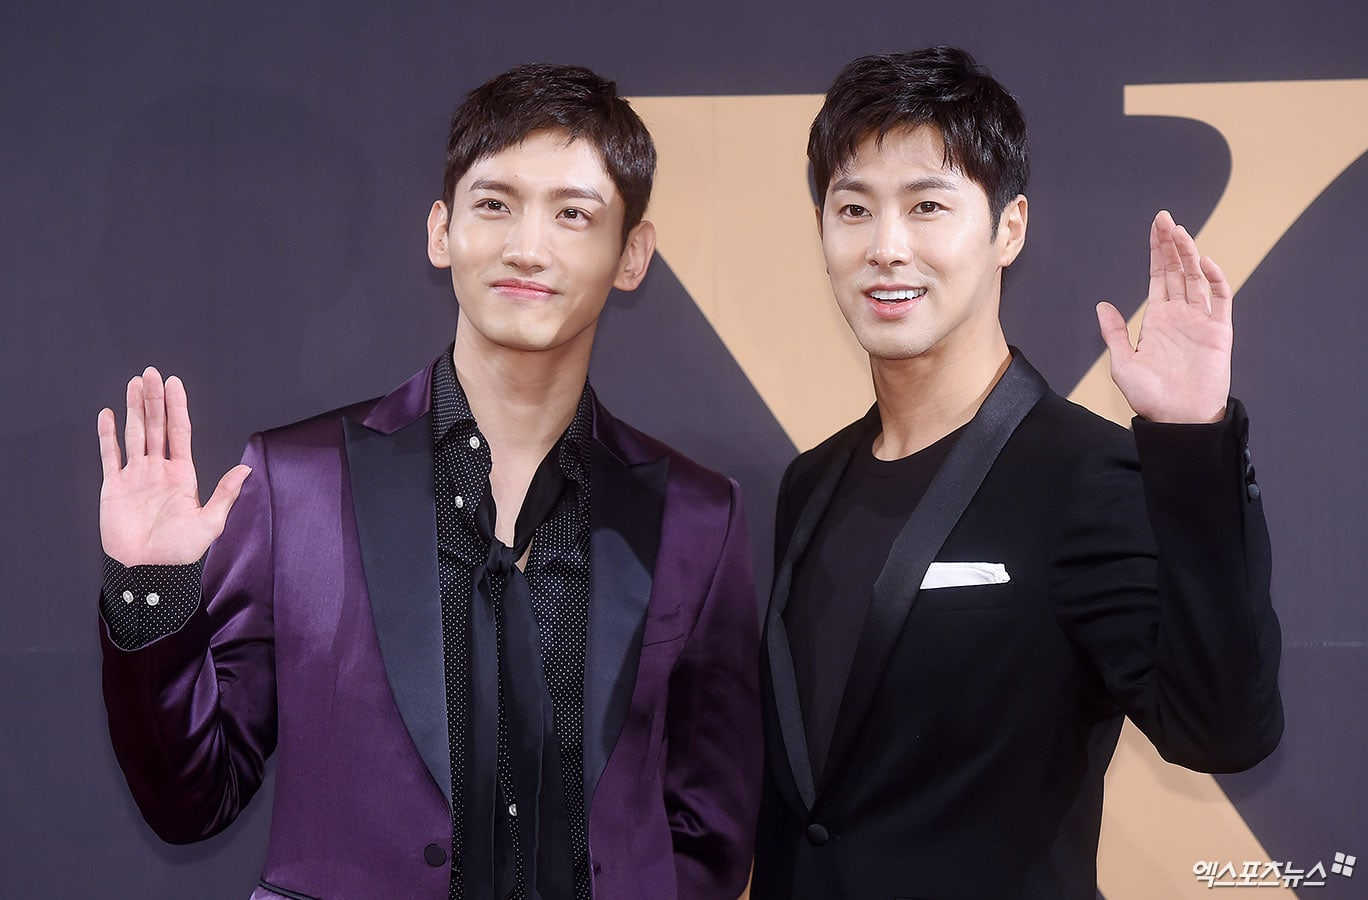 TVXQ Announces Jam-Packed Schedule For Solo Tracks, Japanese Dome Tour, Korean Comeback, And More